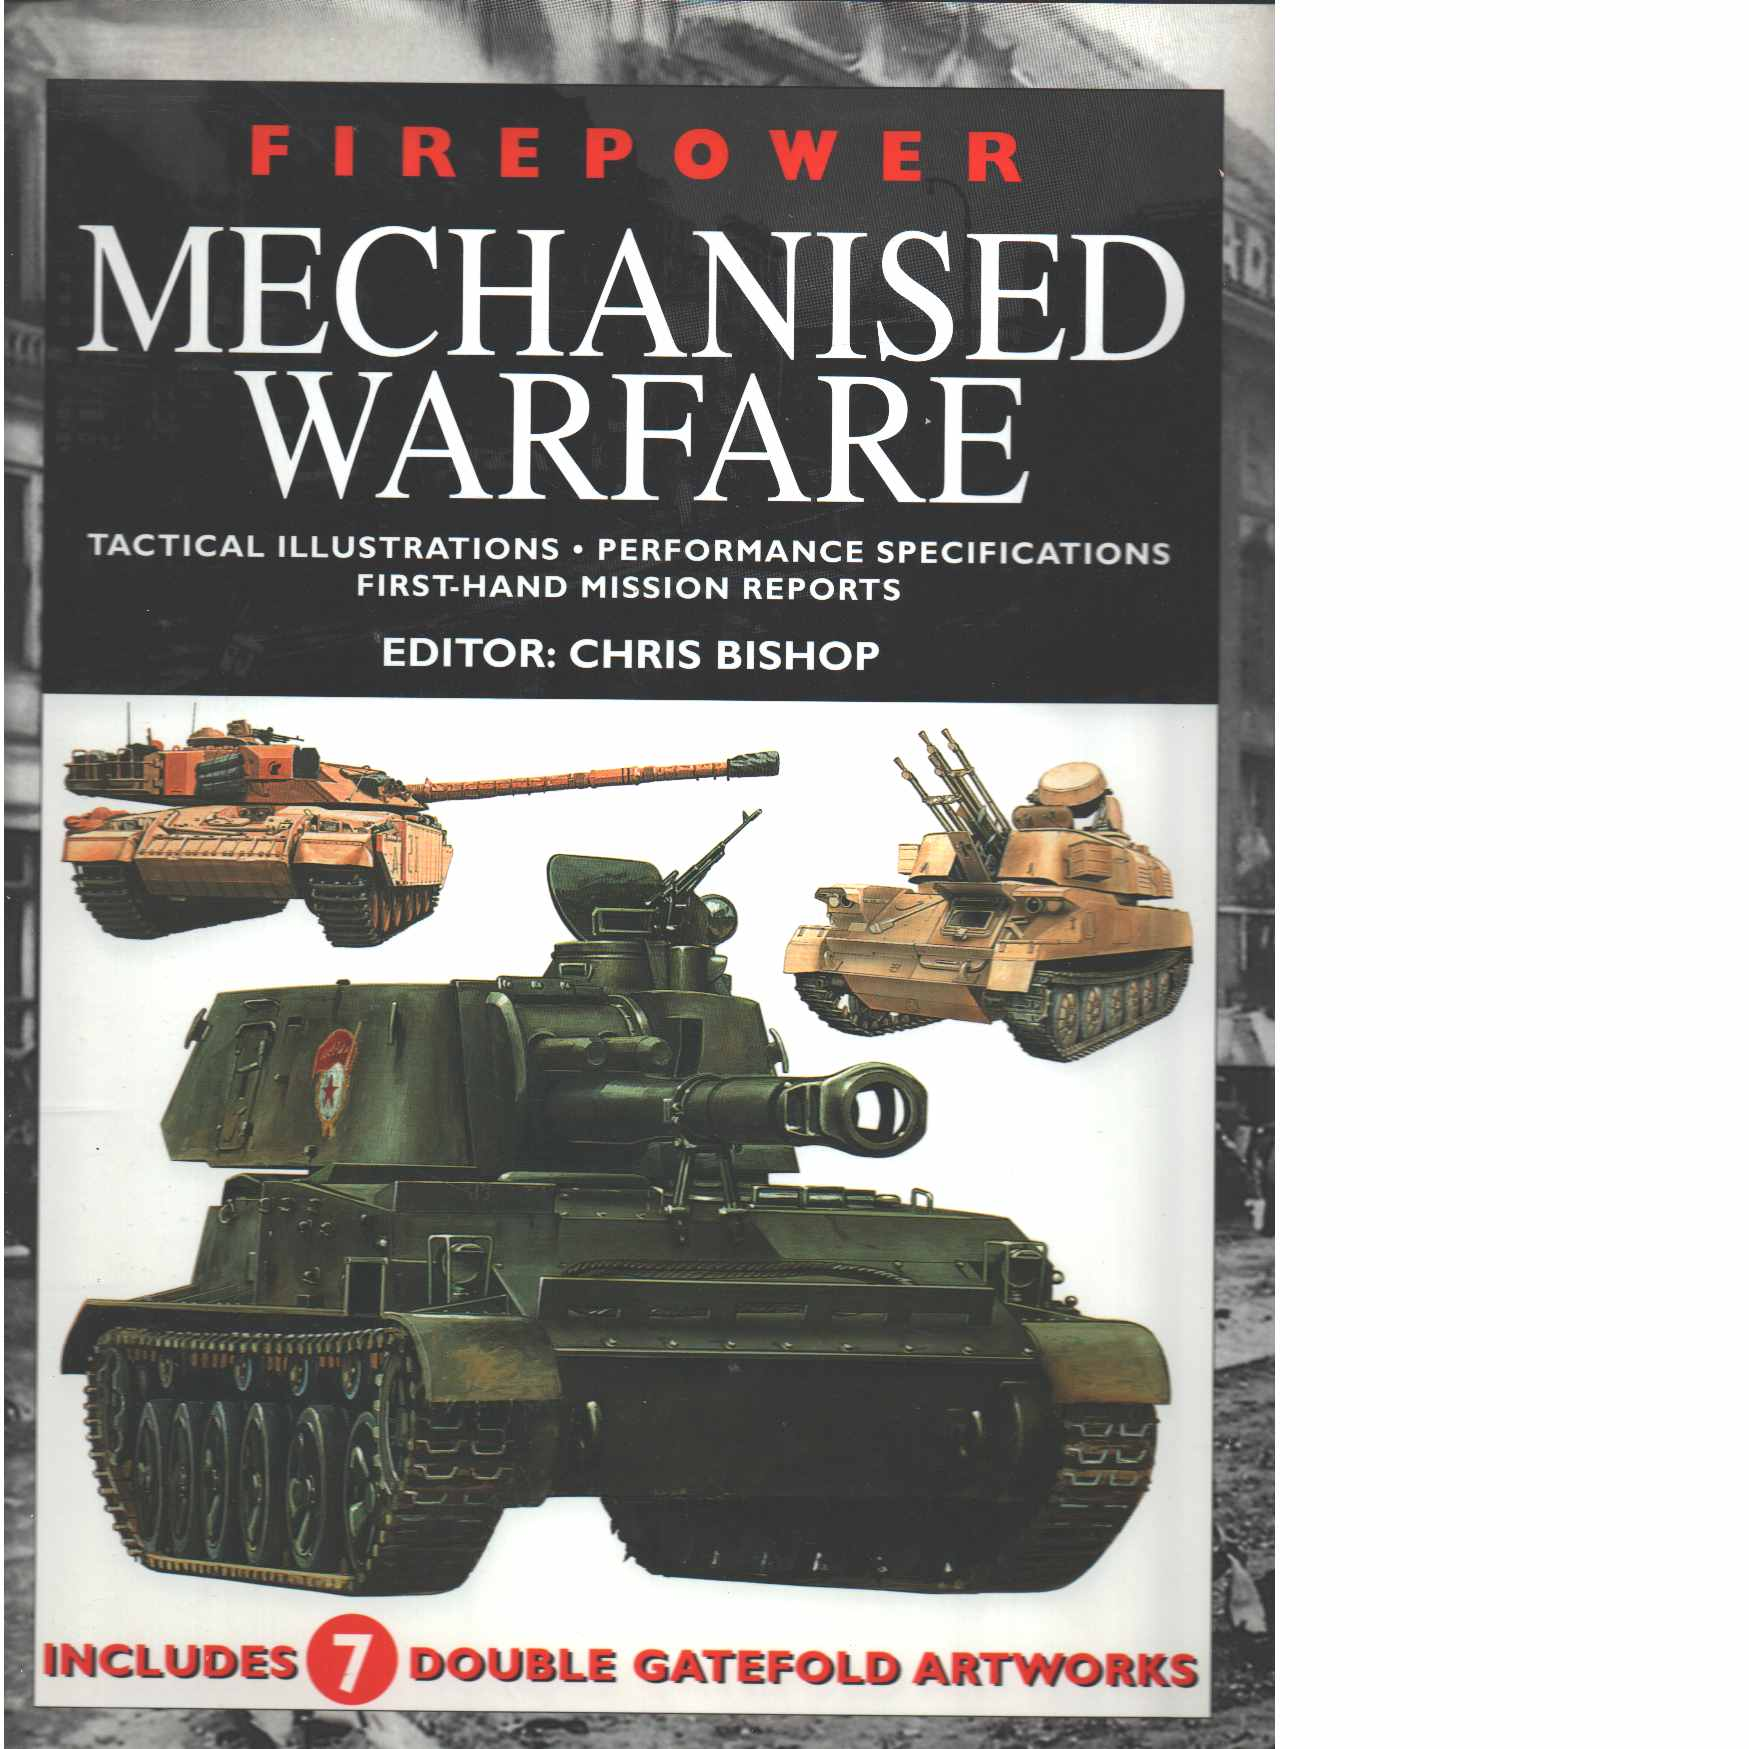 Mechanised warfare : tactical illustrations, performance specifications, first-hand mission reports  - Red. Bishop, Chris